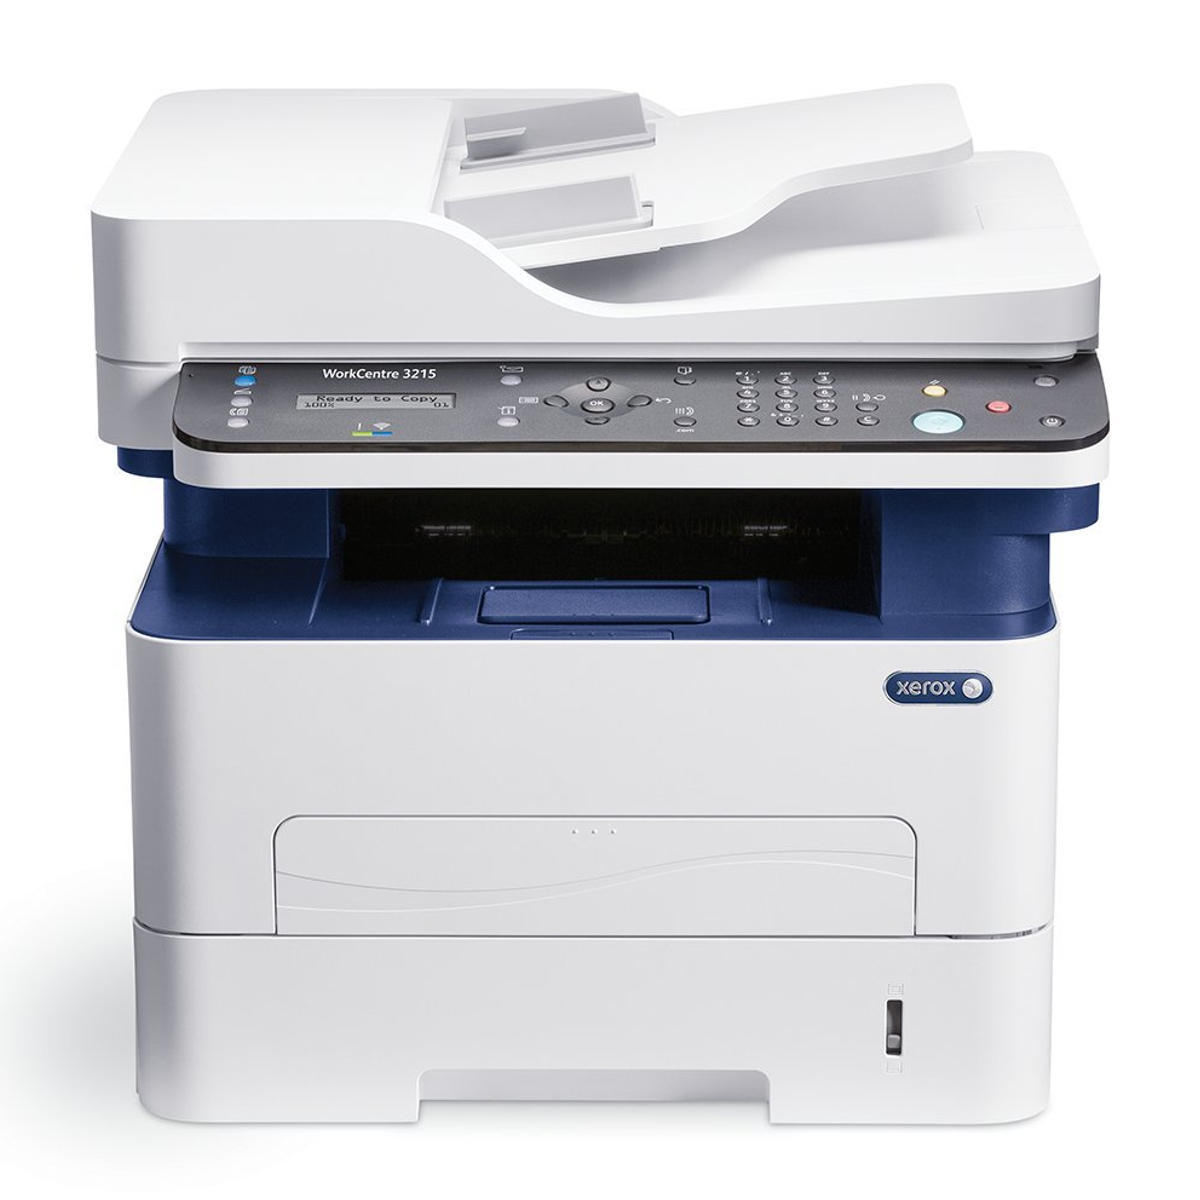 Xerox WorkCentre 3215/NI All-In-One Monochrome LED Laser Printer (WorkCentre 3215)